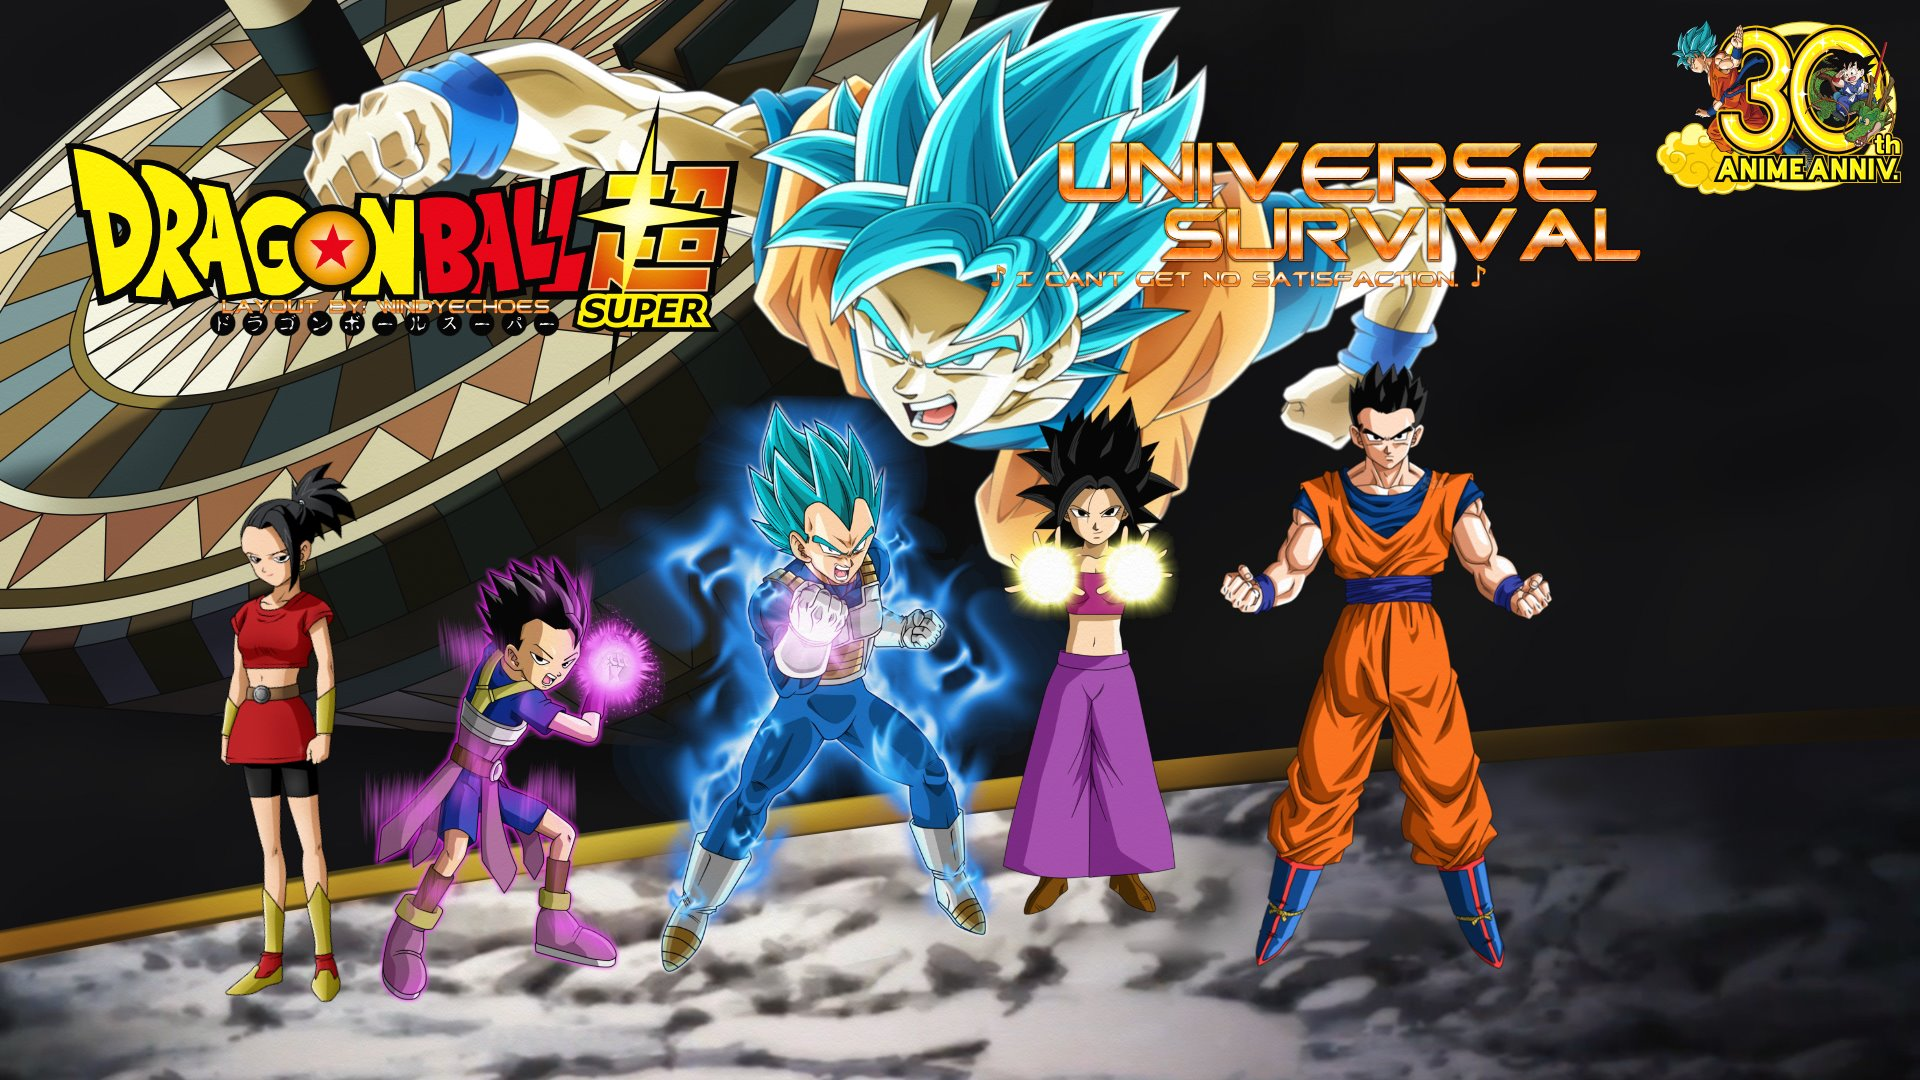 Tournament Of Power Universe Survival Saiyans By Windyechoes